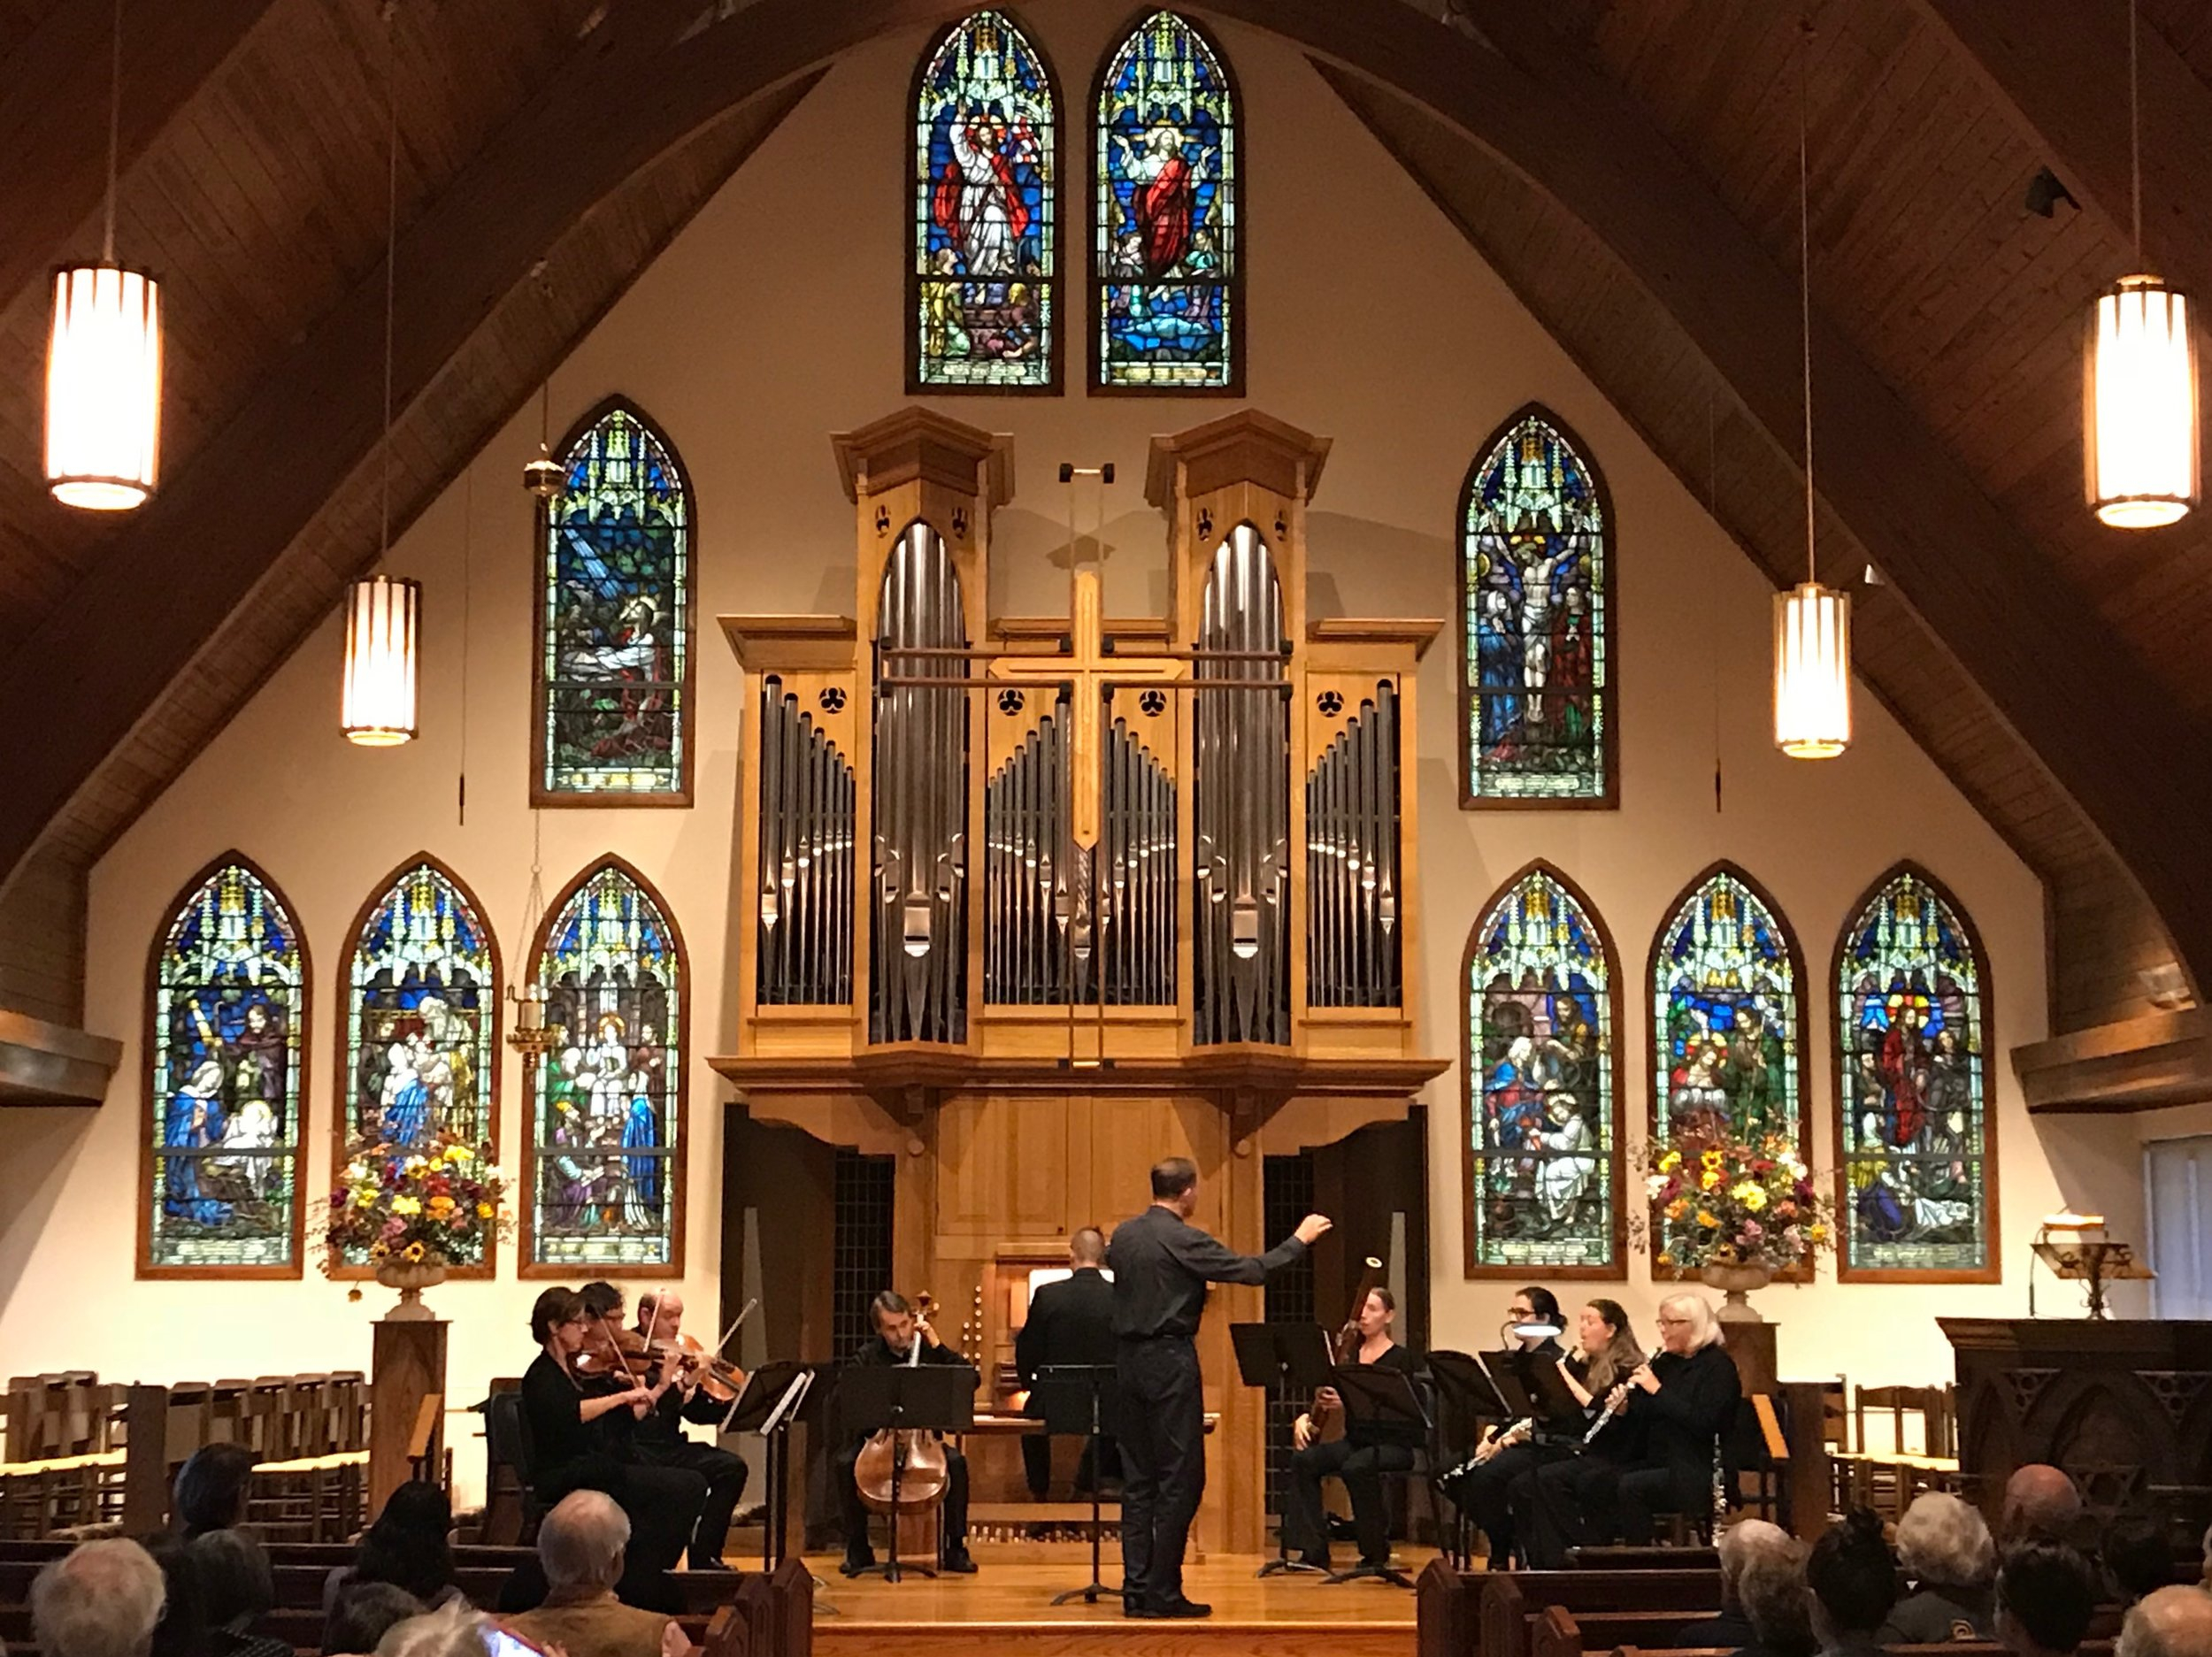 David Rhyne, S.C. Bach Artistic Director, conducting organist Brennan Szafron and the orchestra at St. James Episcopal, Greenville, SC on October 21, 2018.